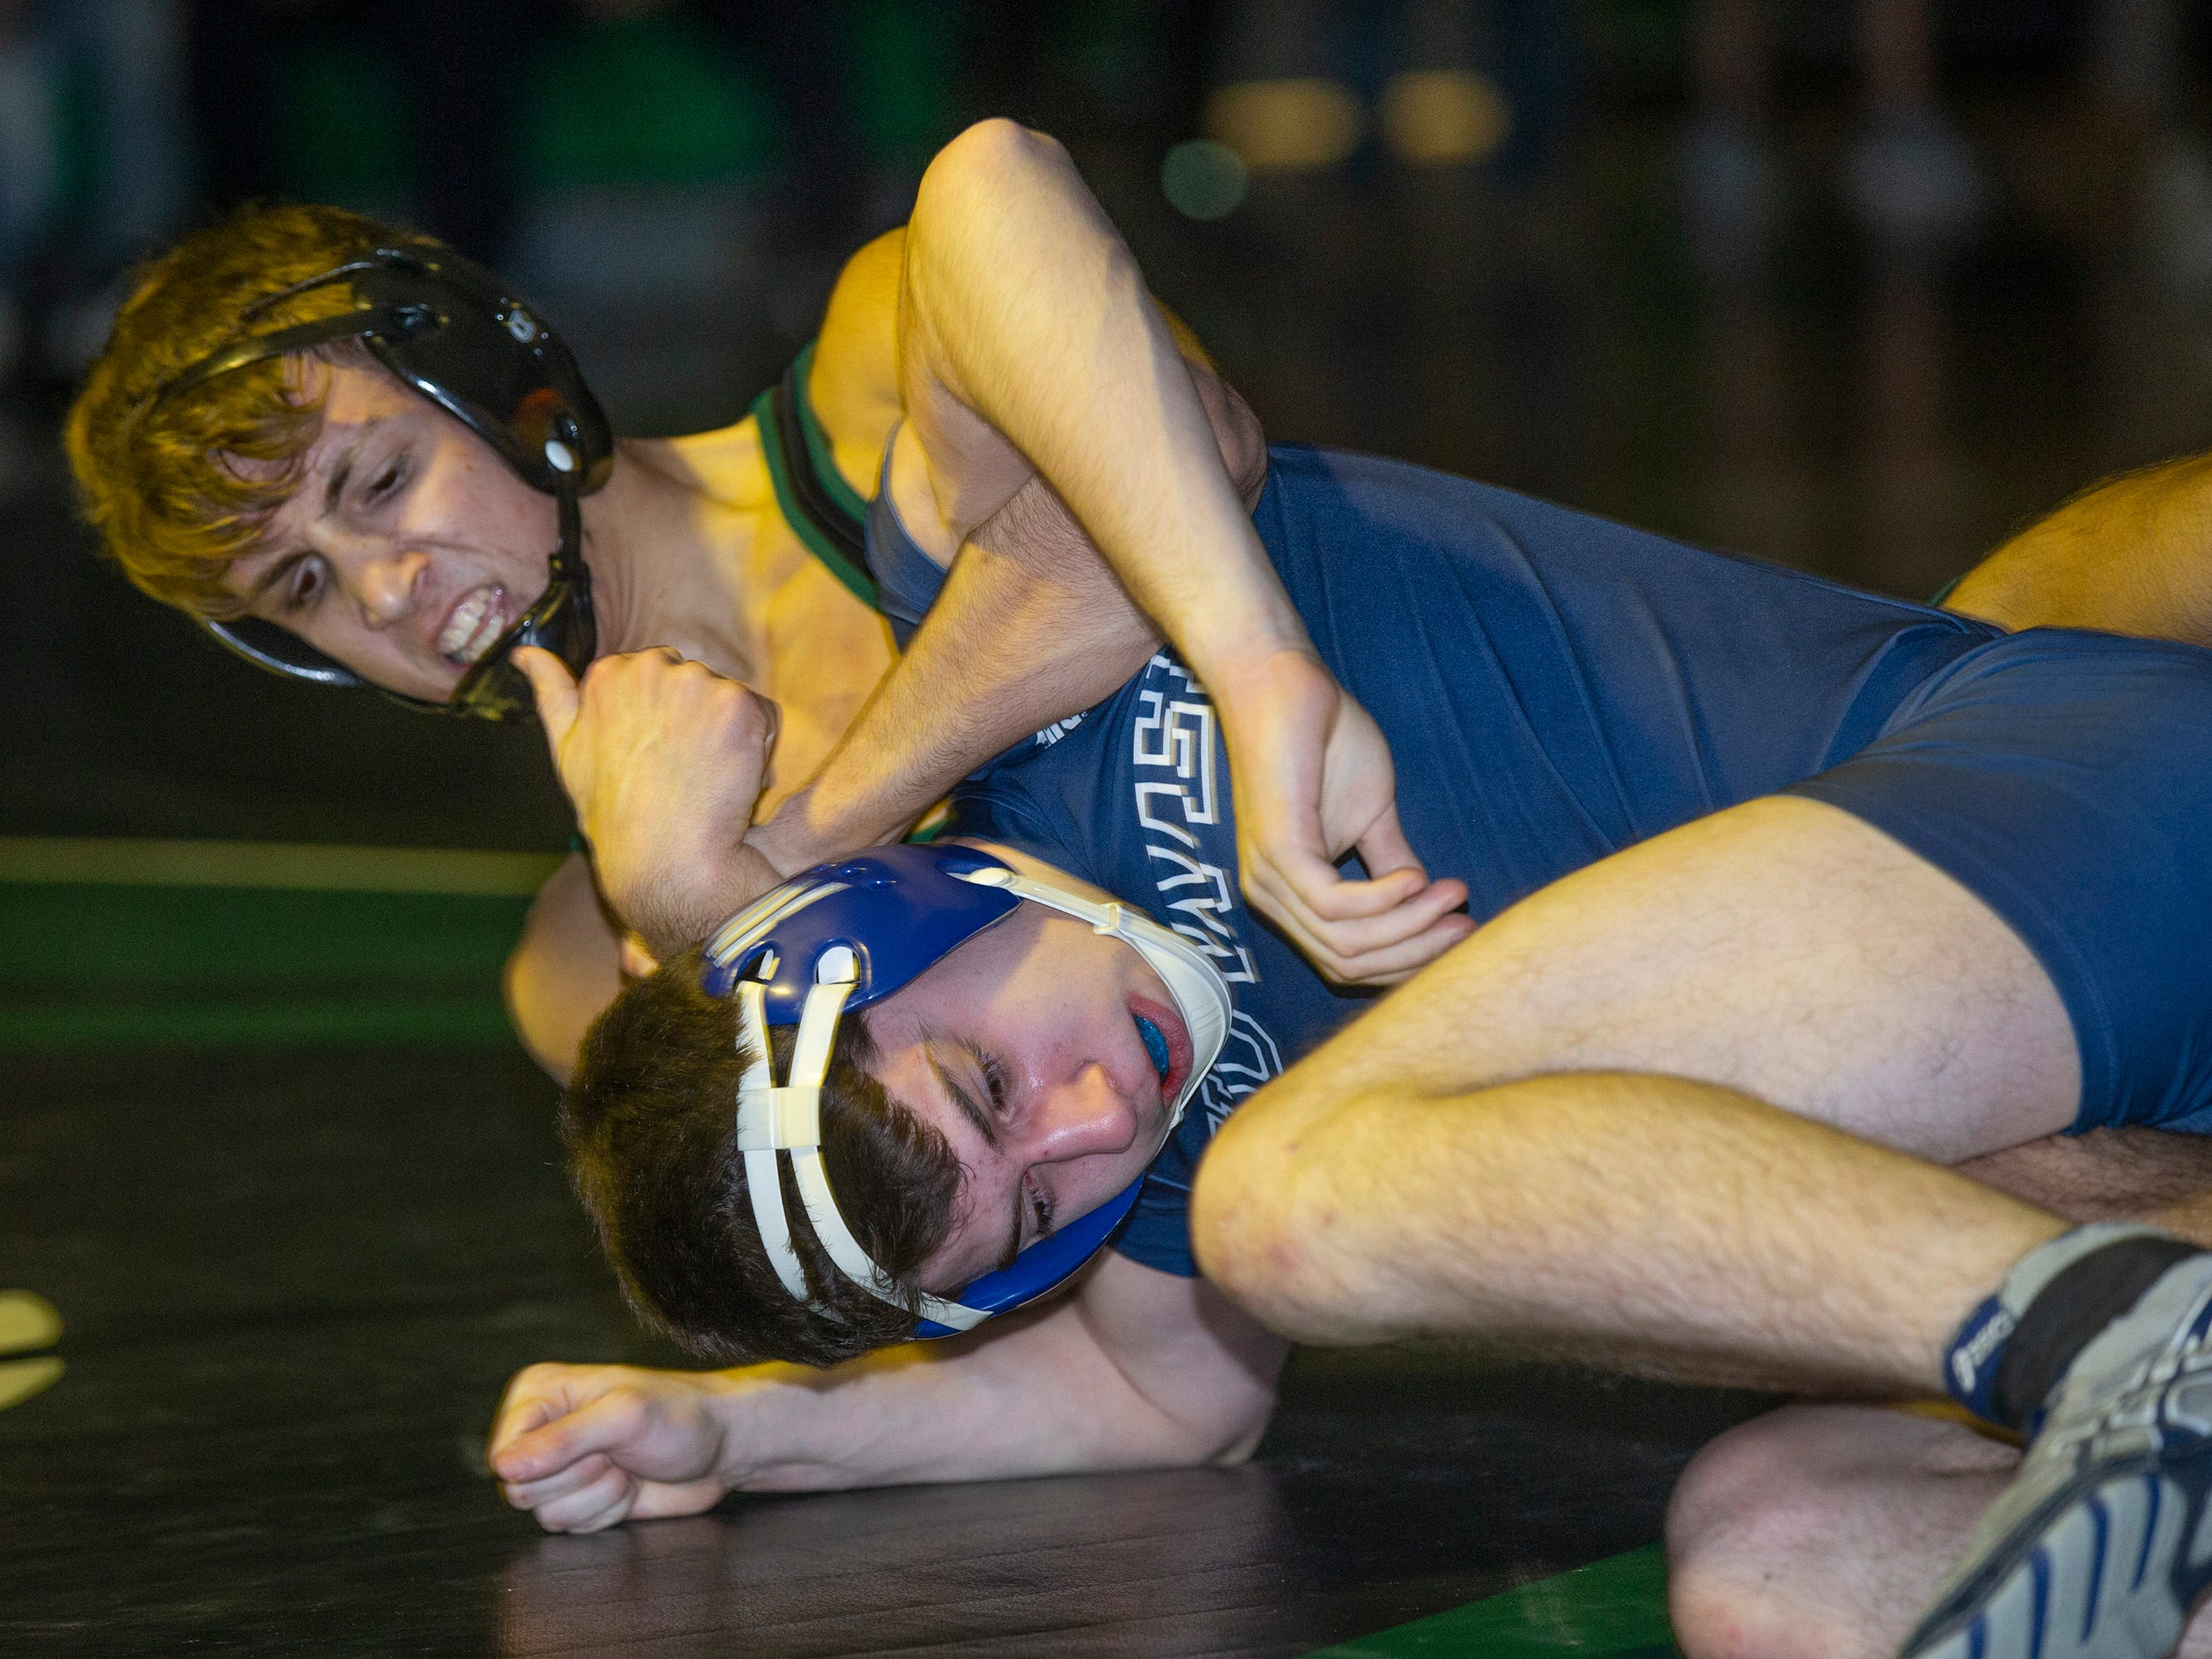 South Plainfield's David Loniewski works for a pin against Howelll's James McGee in their 126 lbs. bout. Howell Wrestling edges out South Plainfield in South Plainfield NJ on January 17, 2019.